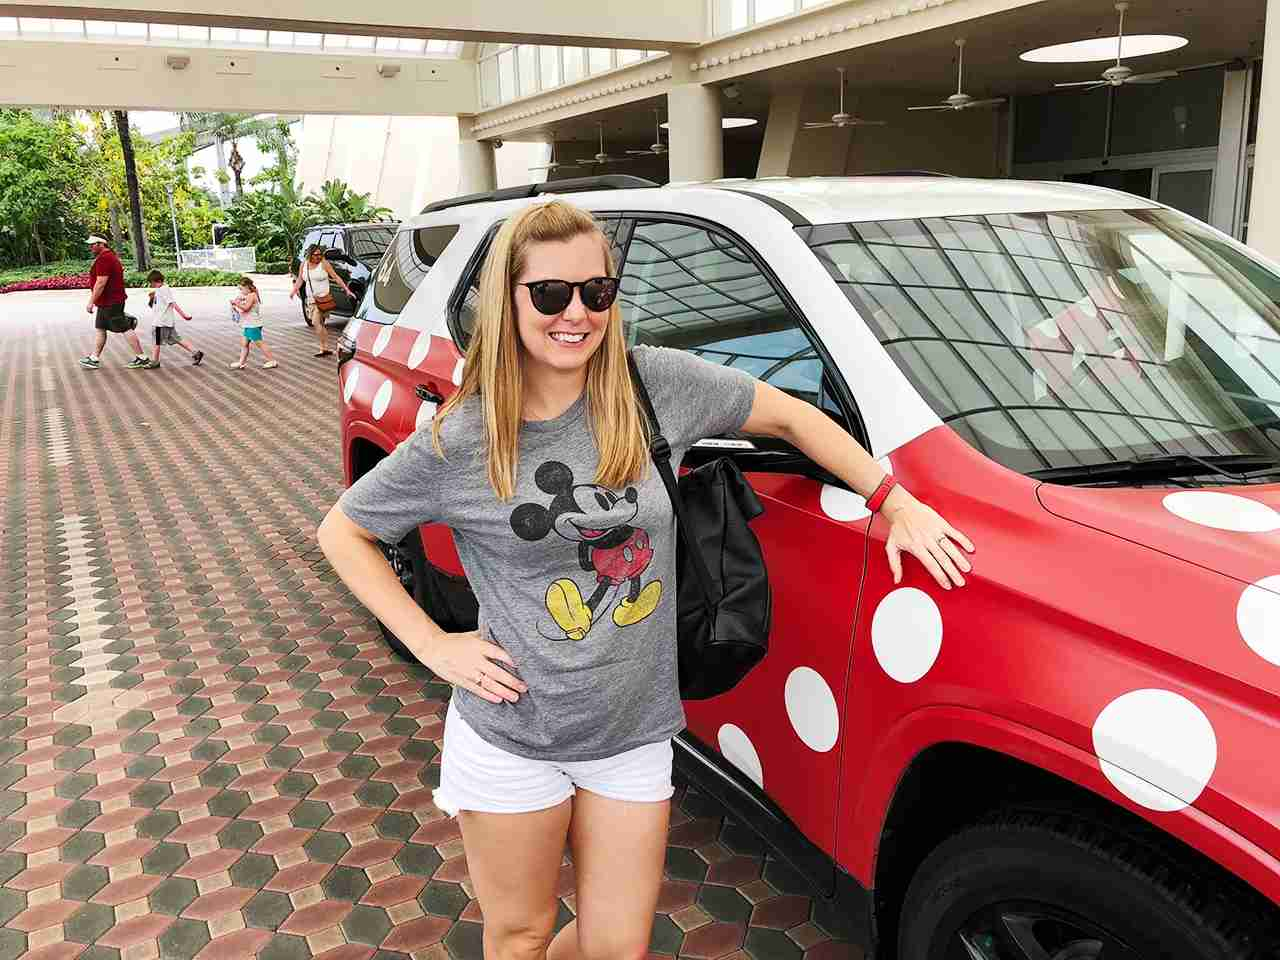 All aboard the $25 Minnie Van service